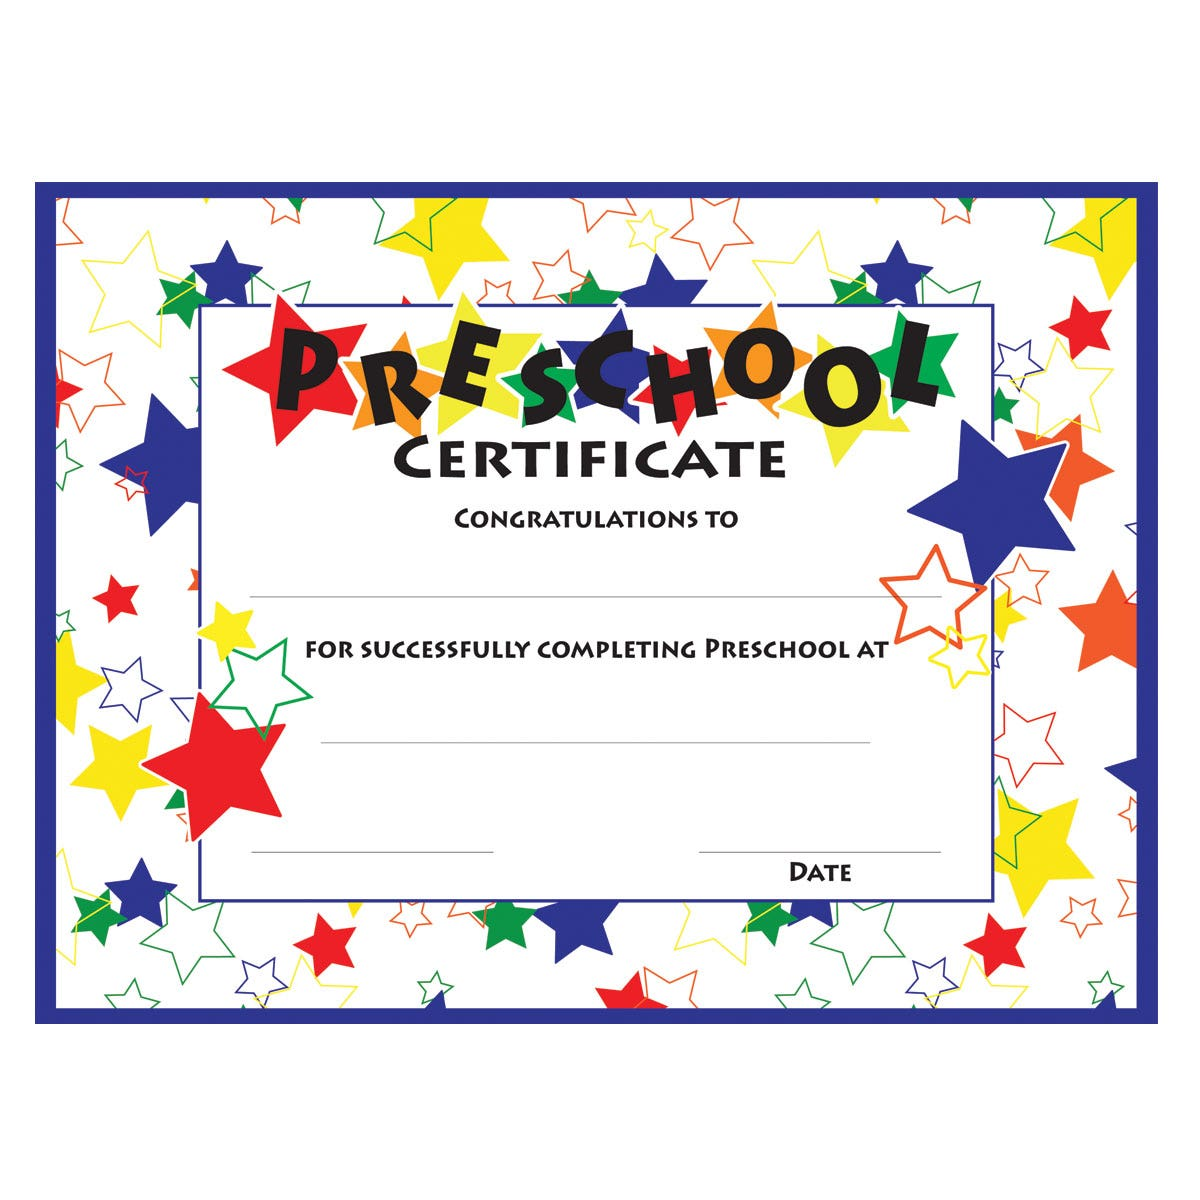 Gratifying image inside preschool certificates printable